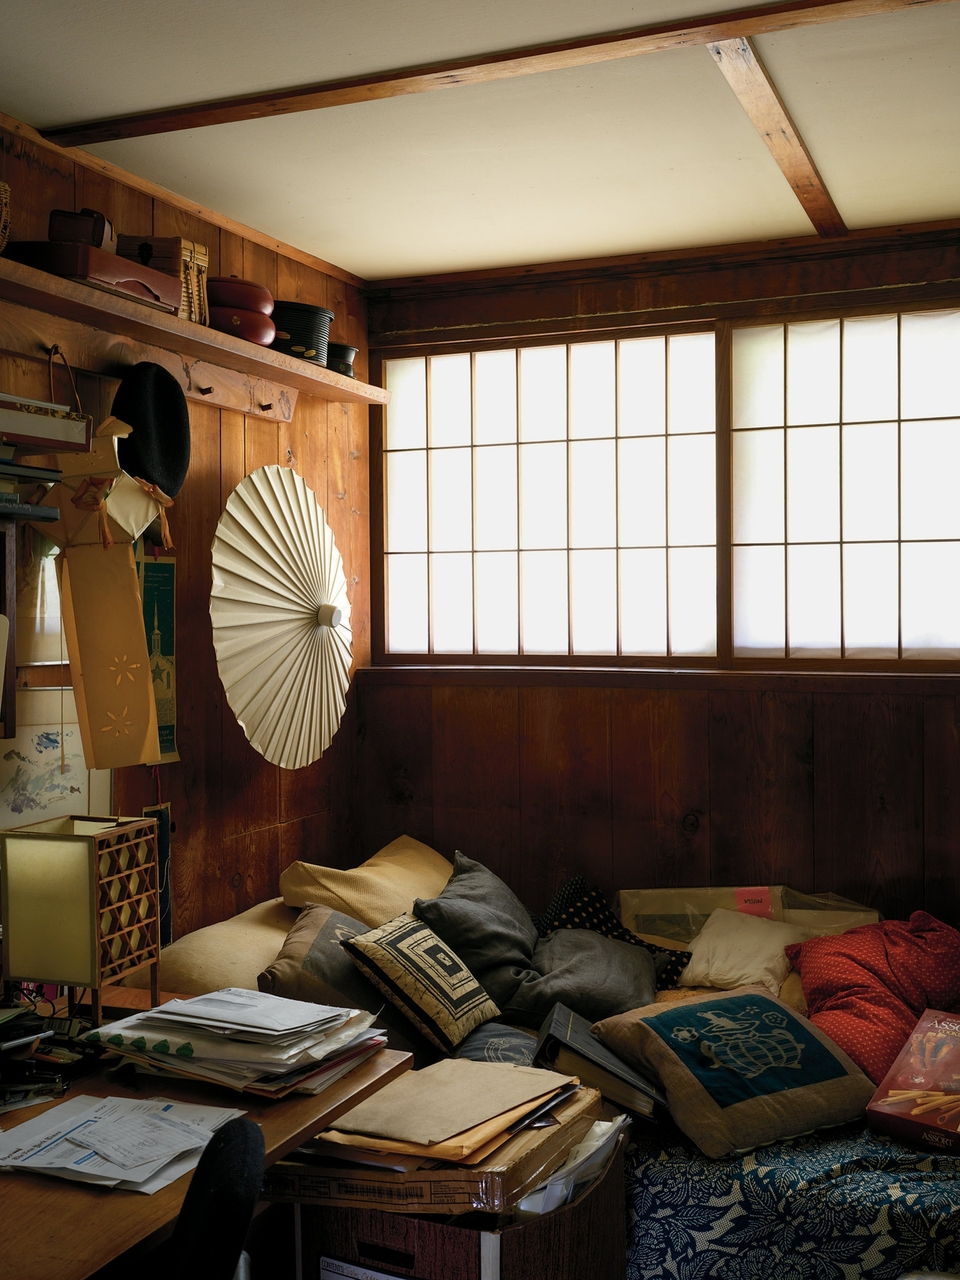 In a guest bedroom, a Japanese umbrella shade hangs over a bed piled with cushions